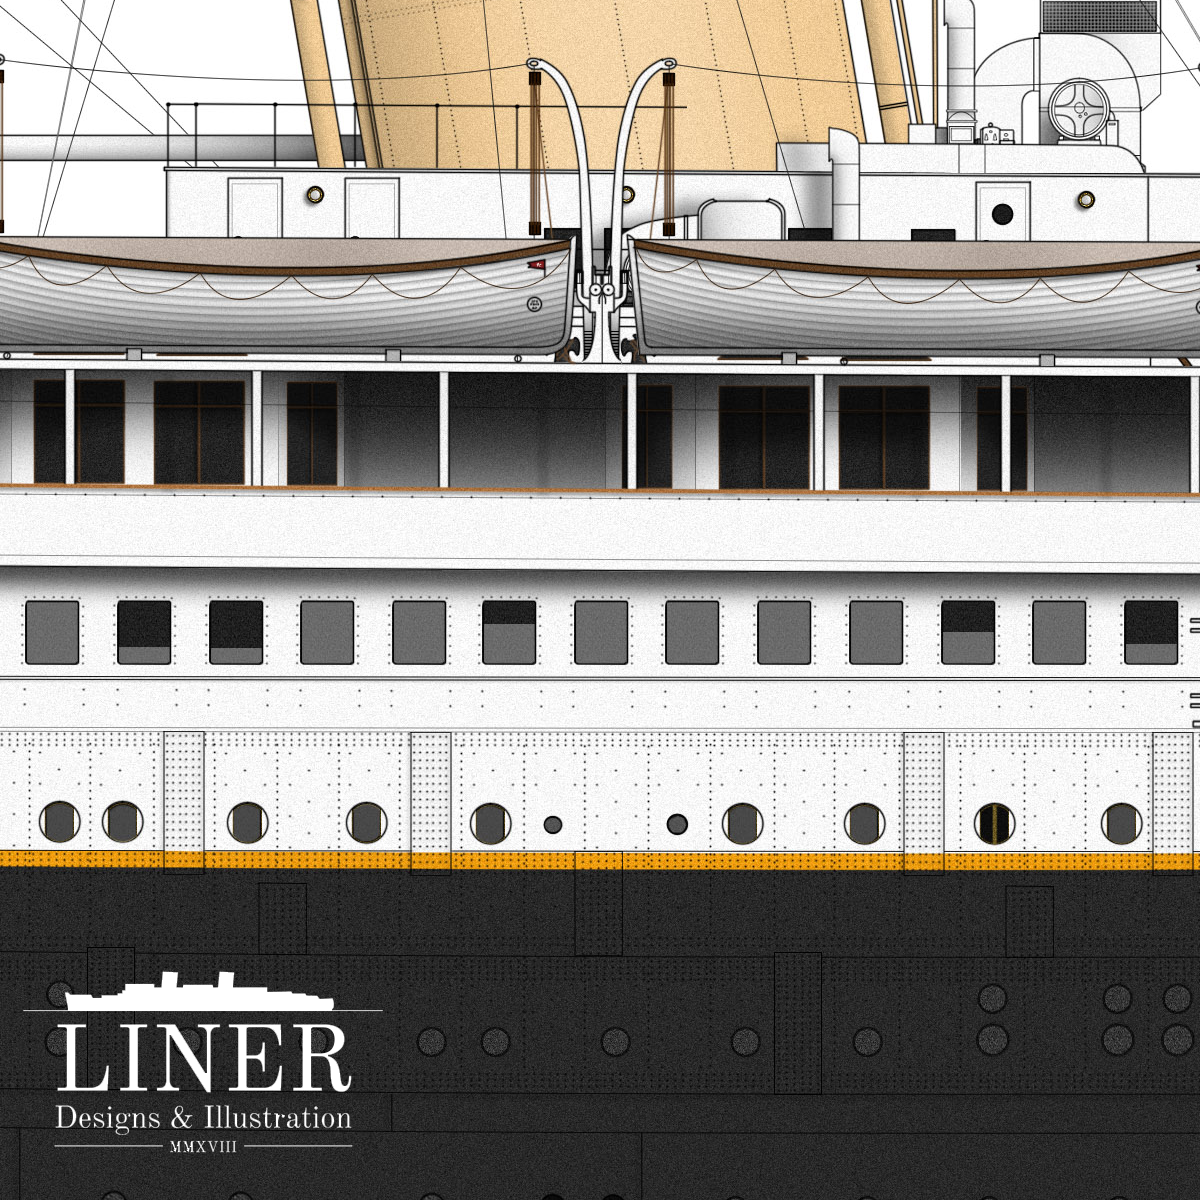 The base of No. 4 funnel showing hull details. Note the half-opened sliding windows along the ship's side.